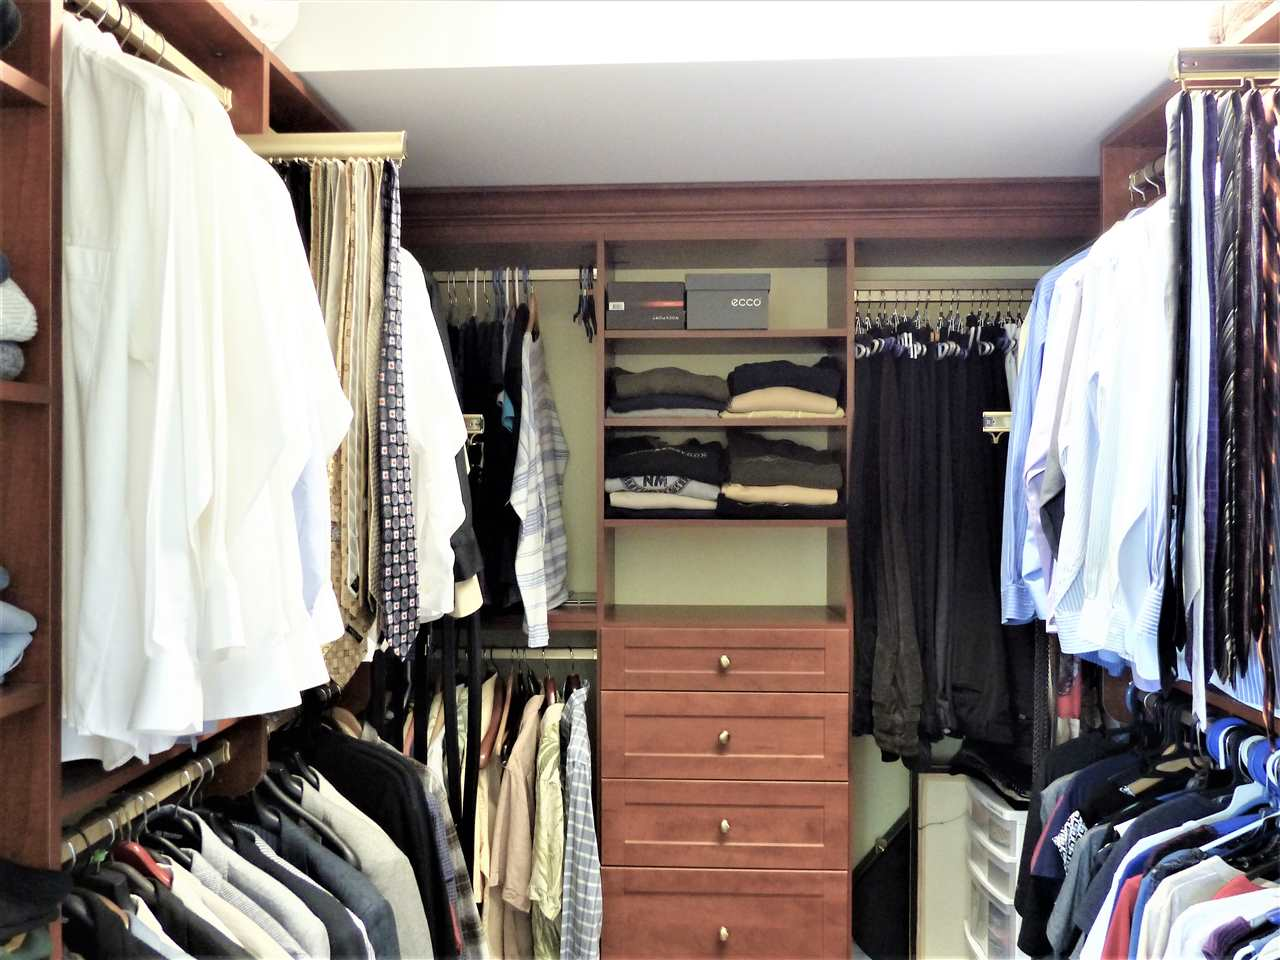 This custom built walk-in closet is wonderful for keeping you organized. Contains tie racks, belt racks, shoe shelving and drawers.